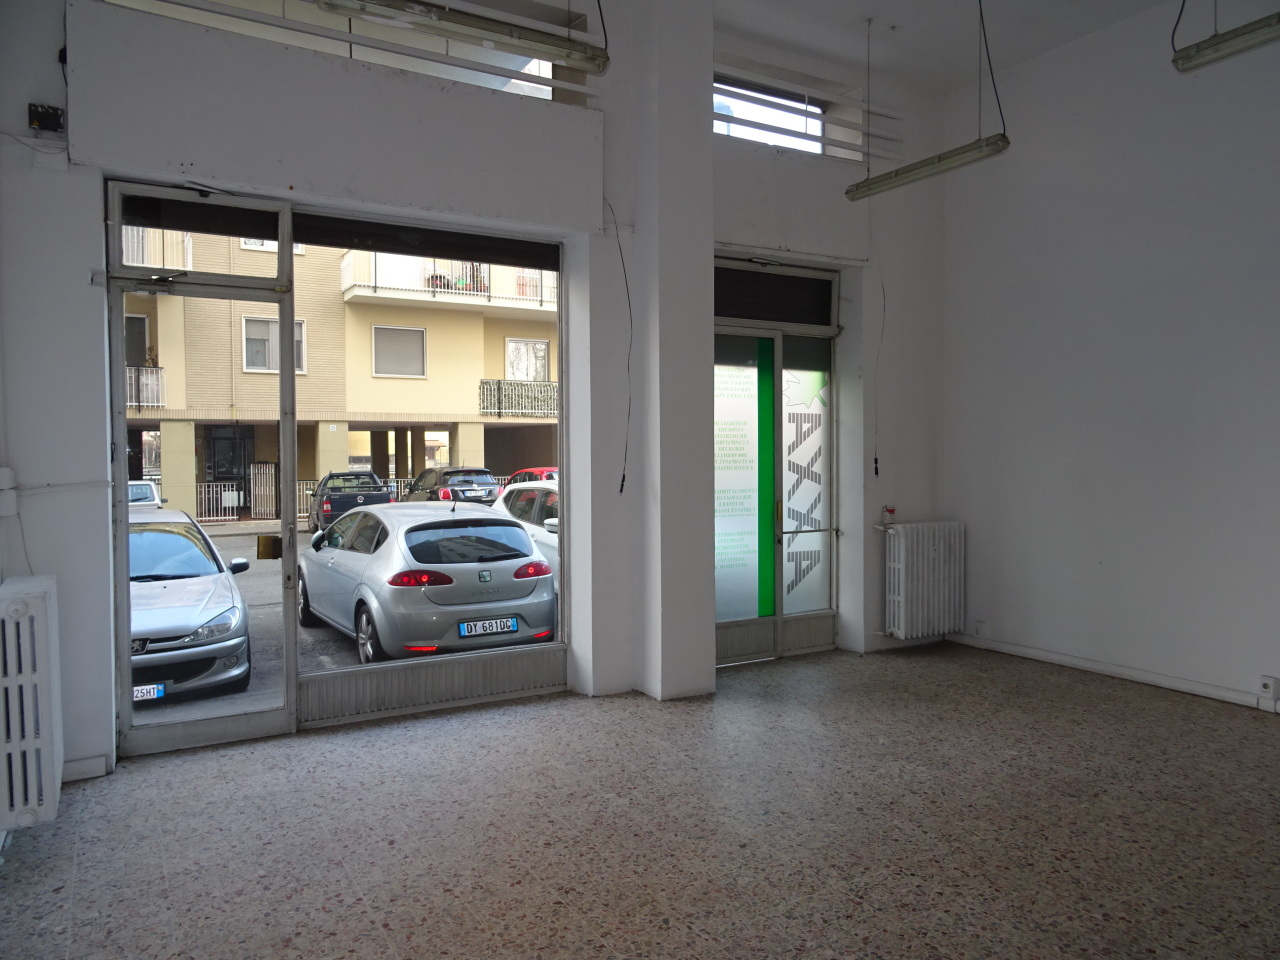 Locale commerciale - 2 Vetrine a Beinasco Rif. 10576651